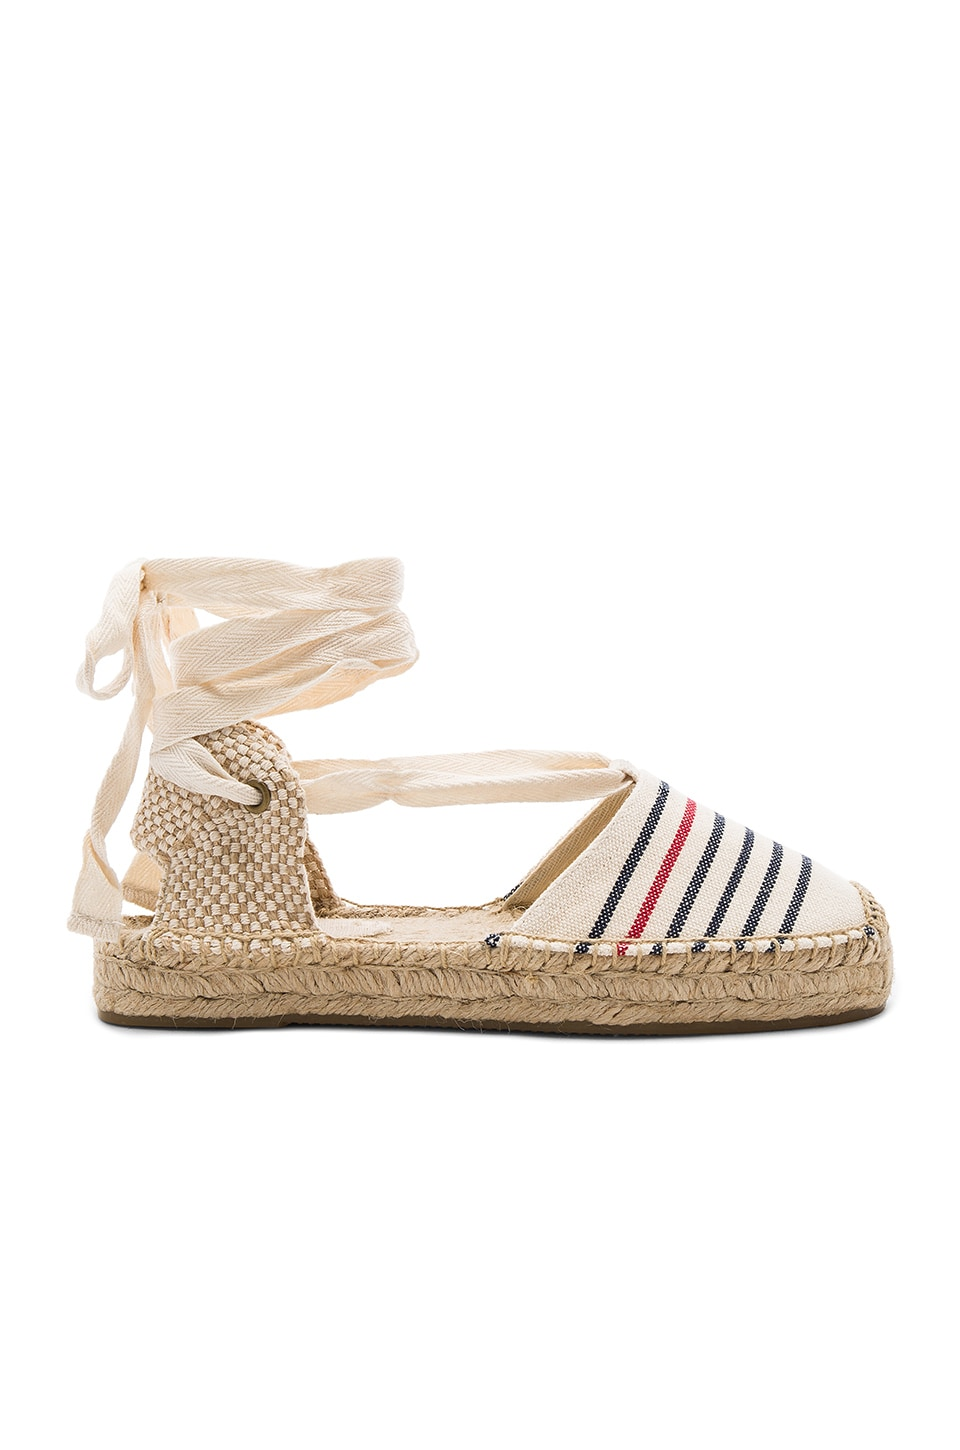 Soludos Striped Gladiator Sandal in Red Navy Natural